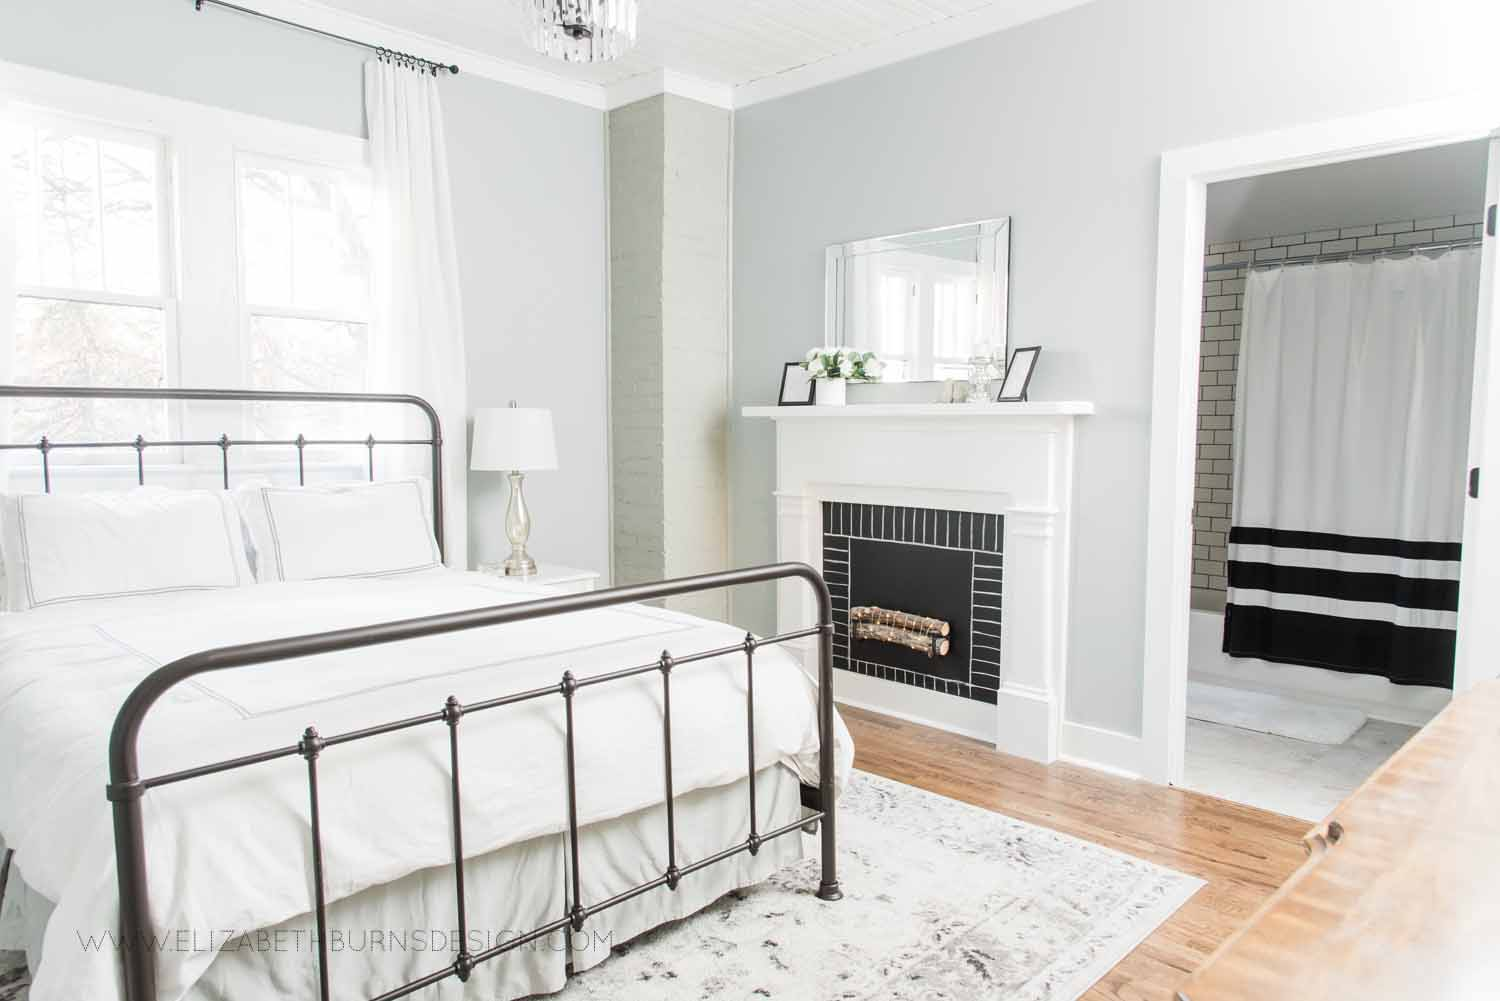 Elizabeth Burns Design Raleigh Interior Designer  Farmhouse Fixer Upper Cottage Renovation, Sherwin Williams Magnetic Gray SW 7058 Traditional Master Bedroom (3).jpg